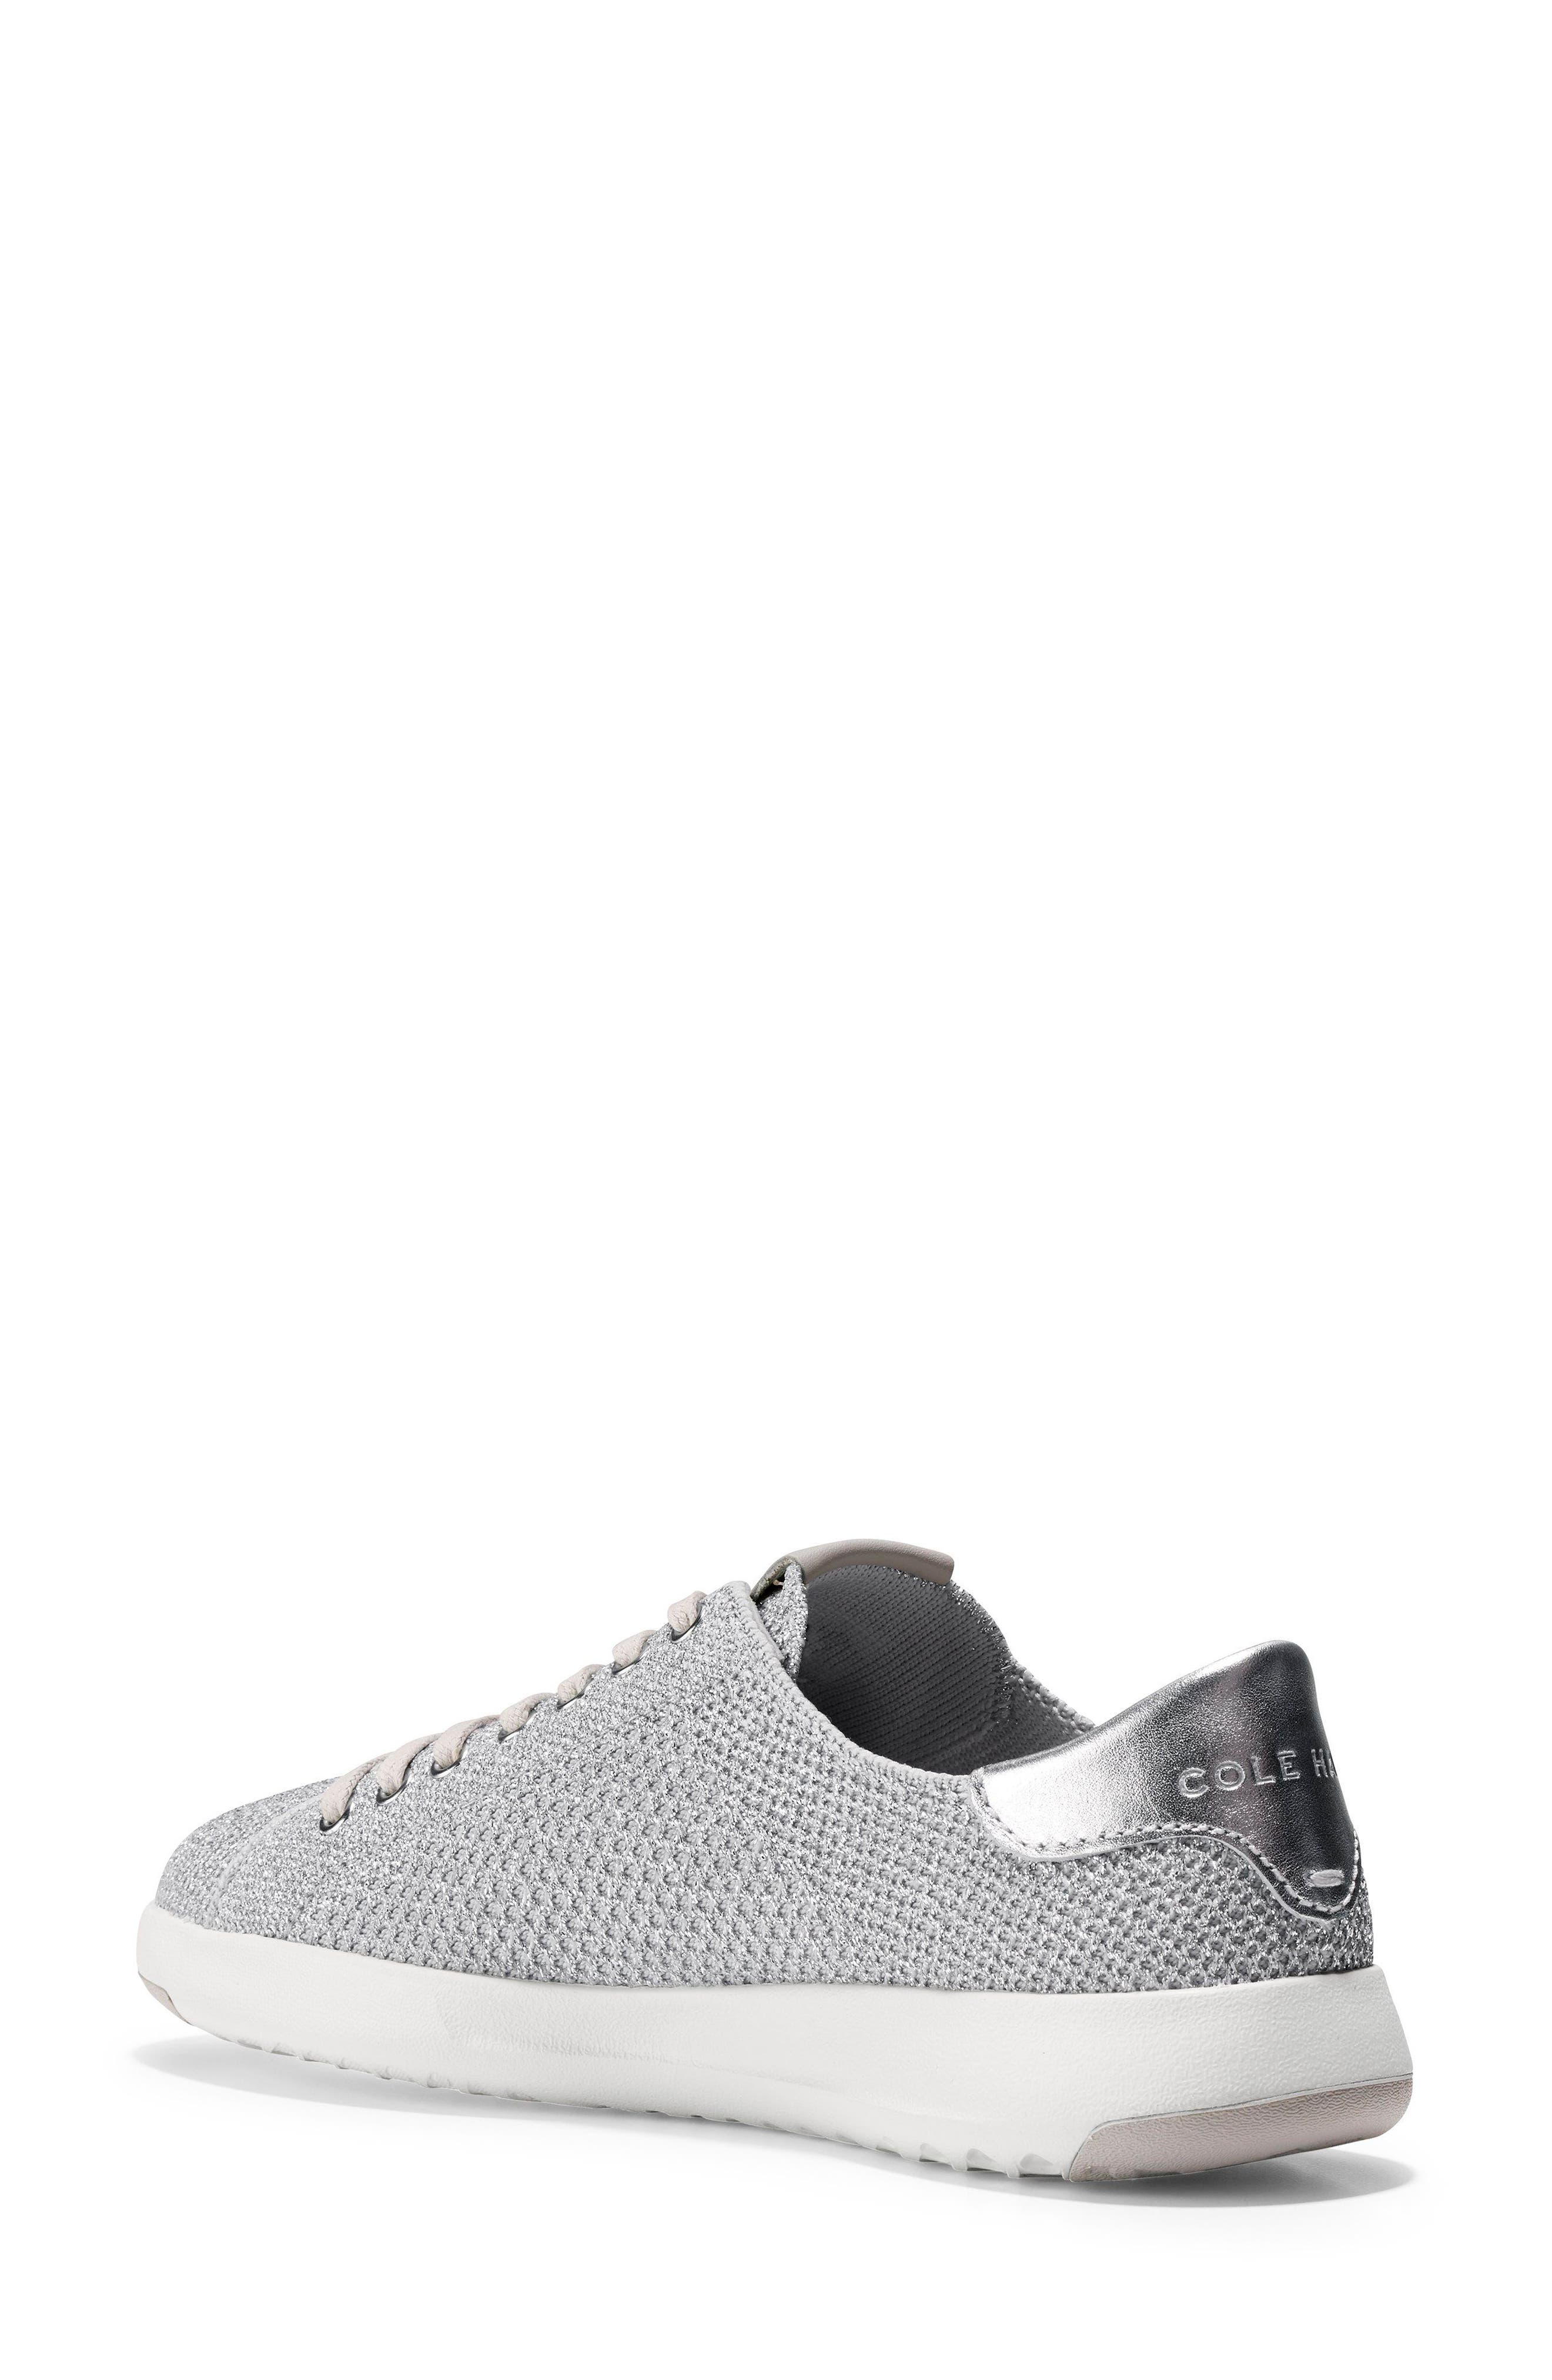 GrandPro Stitchlite Sneaker,                             Alternate thumbnail 2, color,                             Silver Fabric